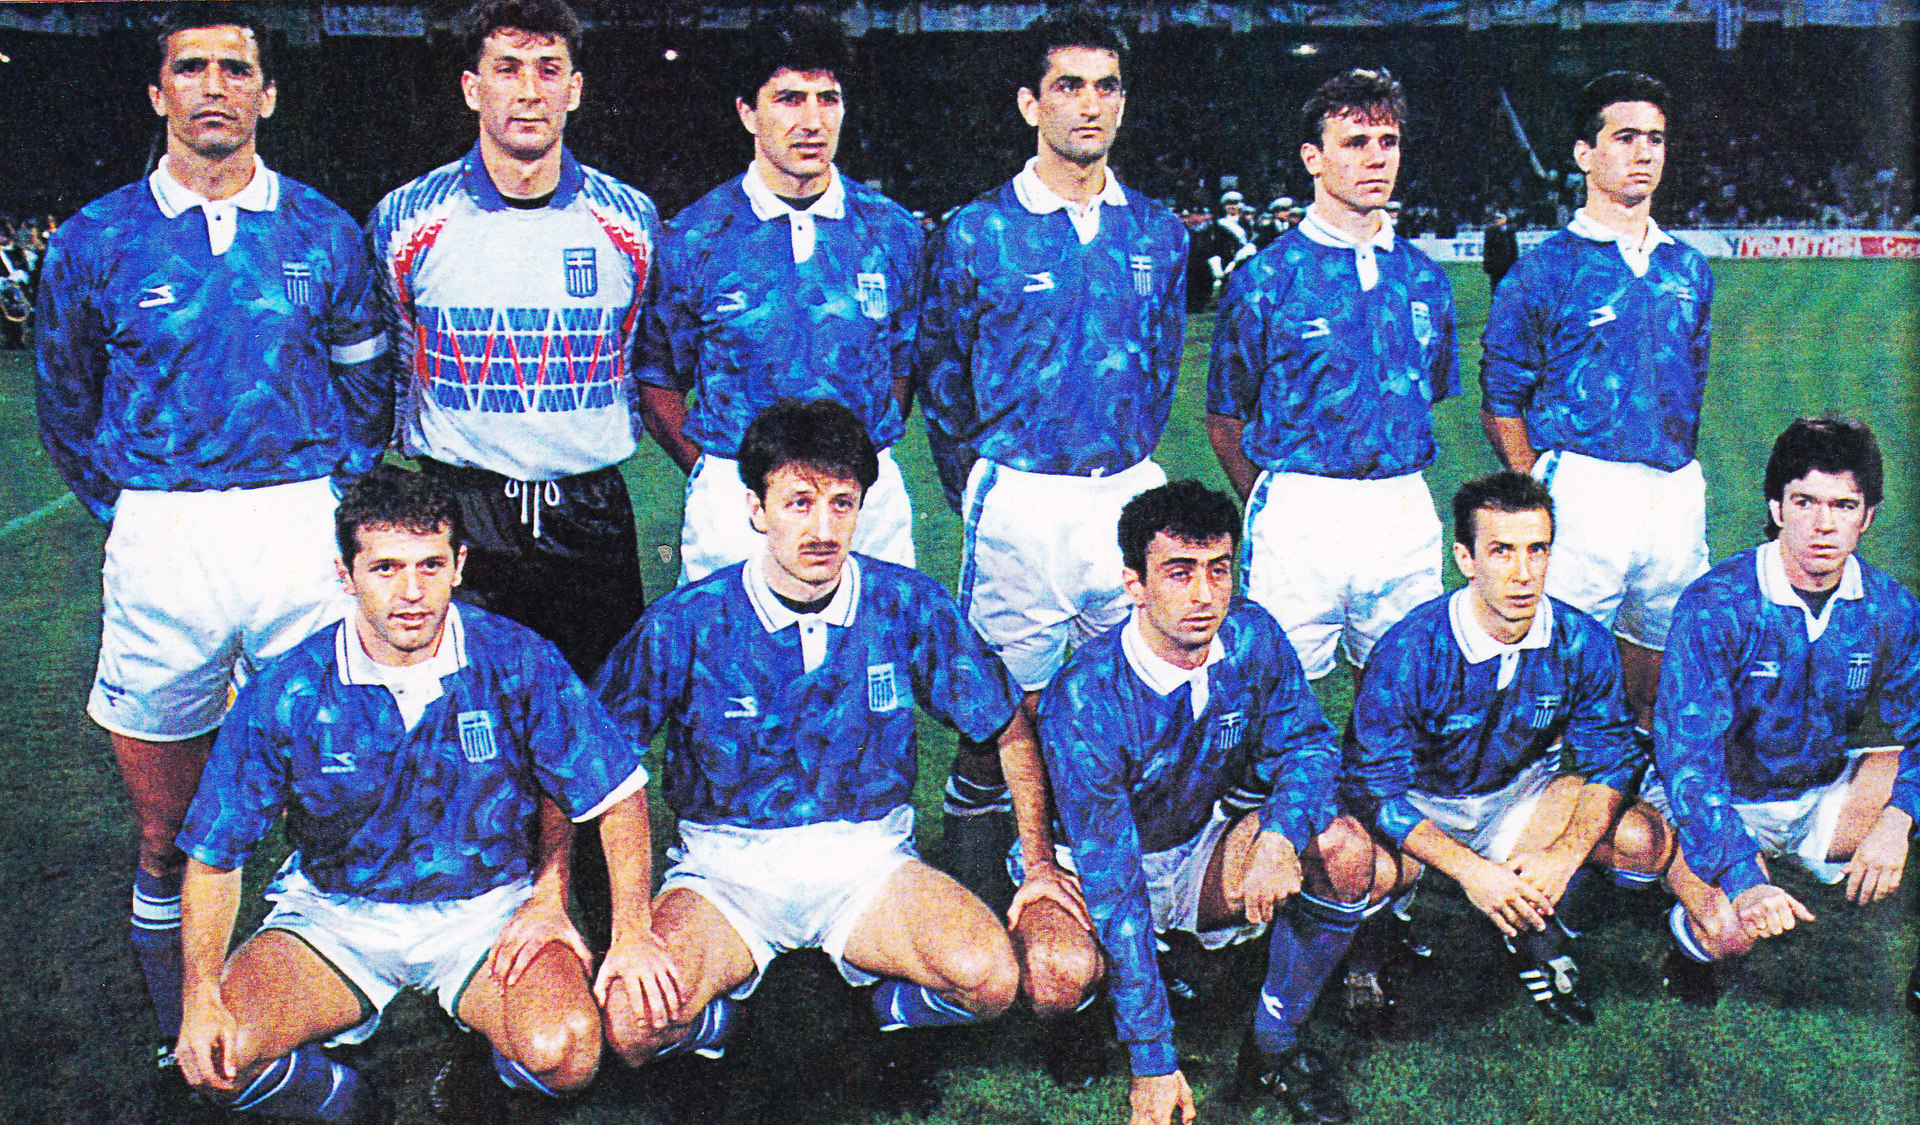 Greece-1993-diadora-home-kit-blue-white-blue-line-up.jpg